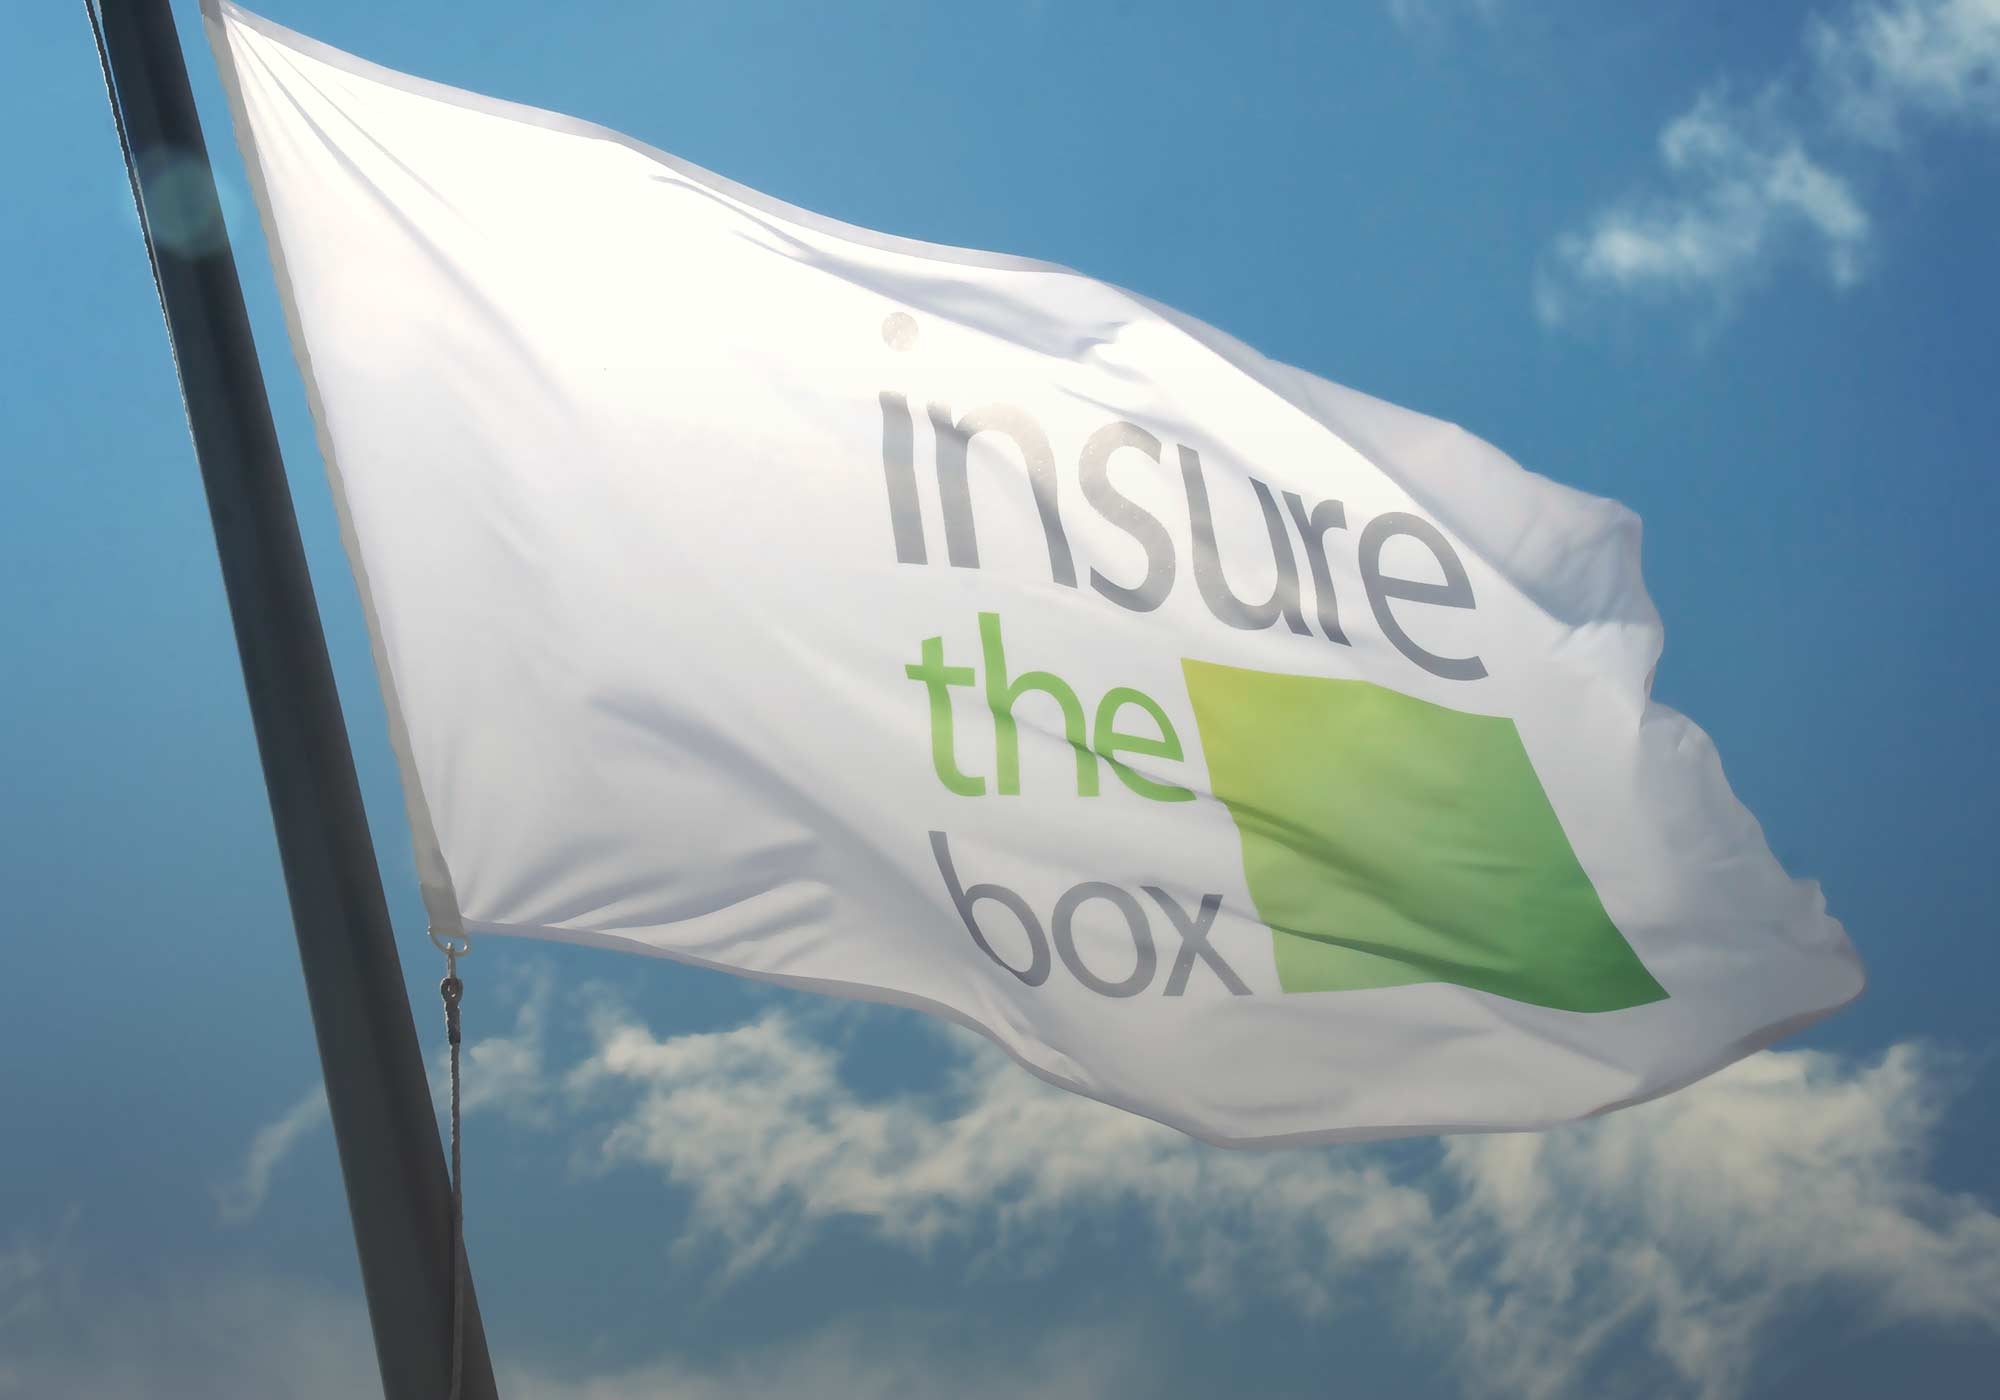 Insurethebox flag